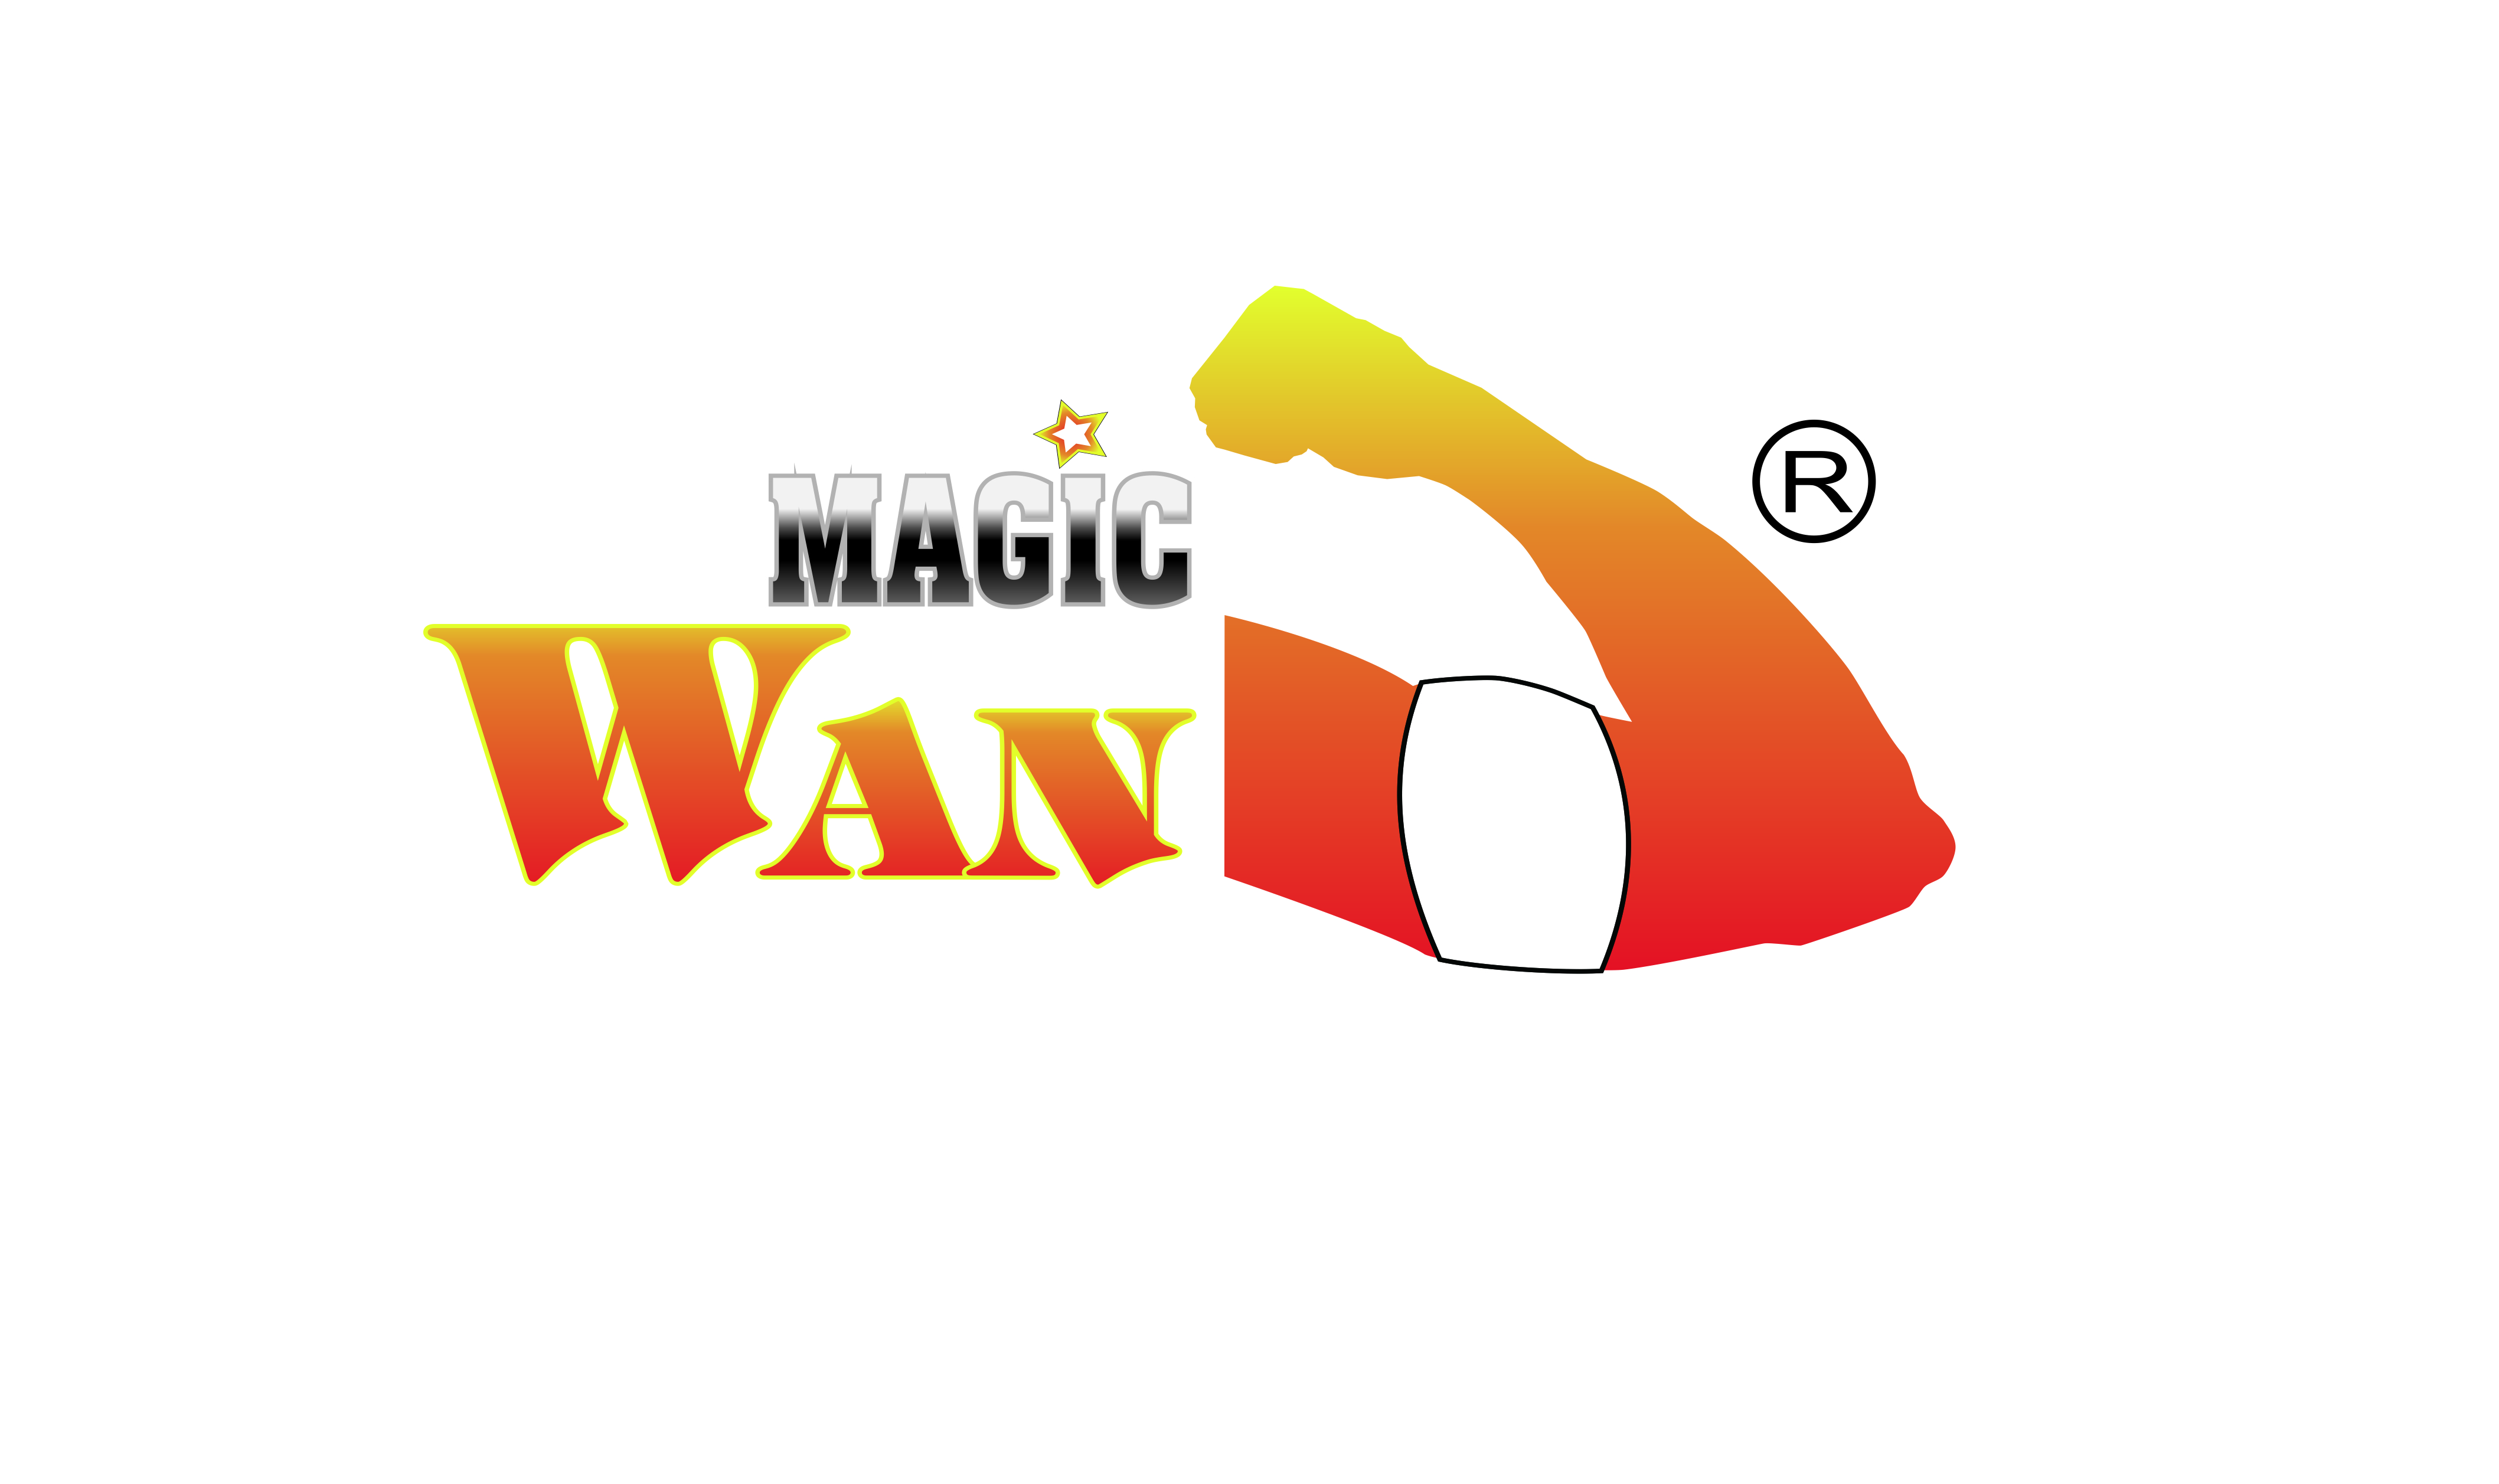 Magic Wand (Beijing)Trading company limited